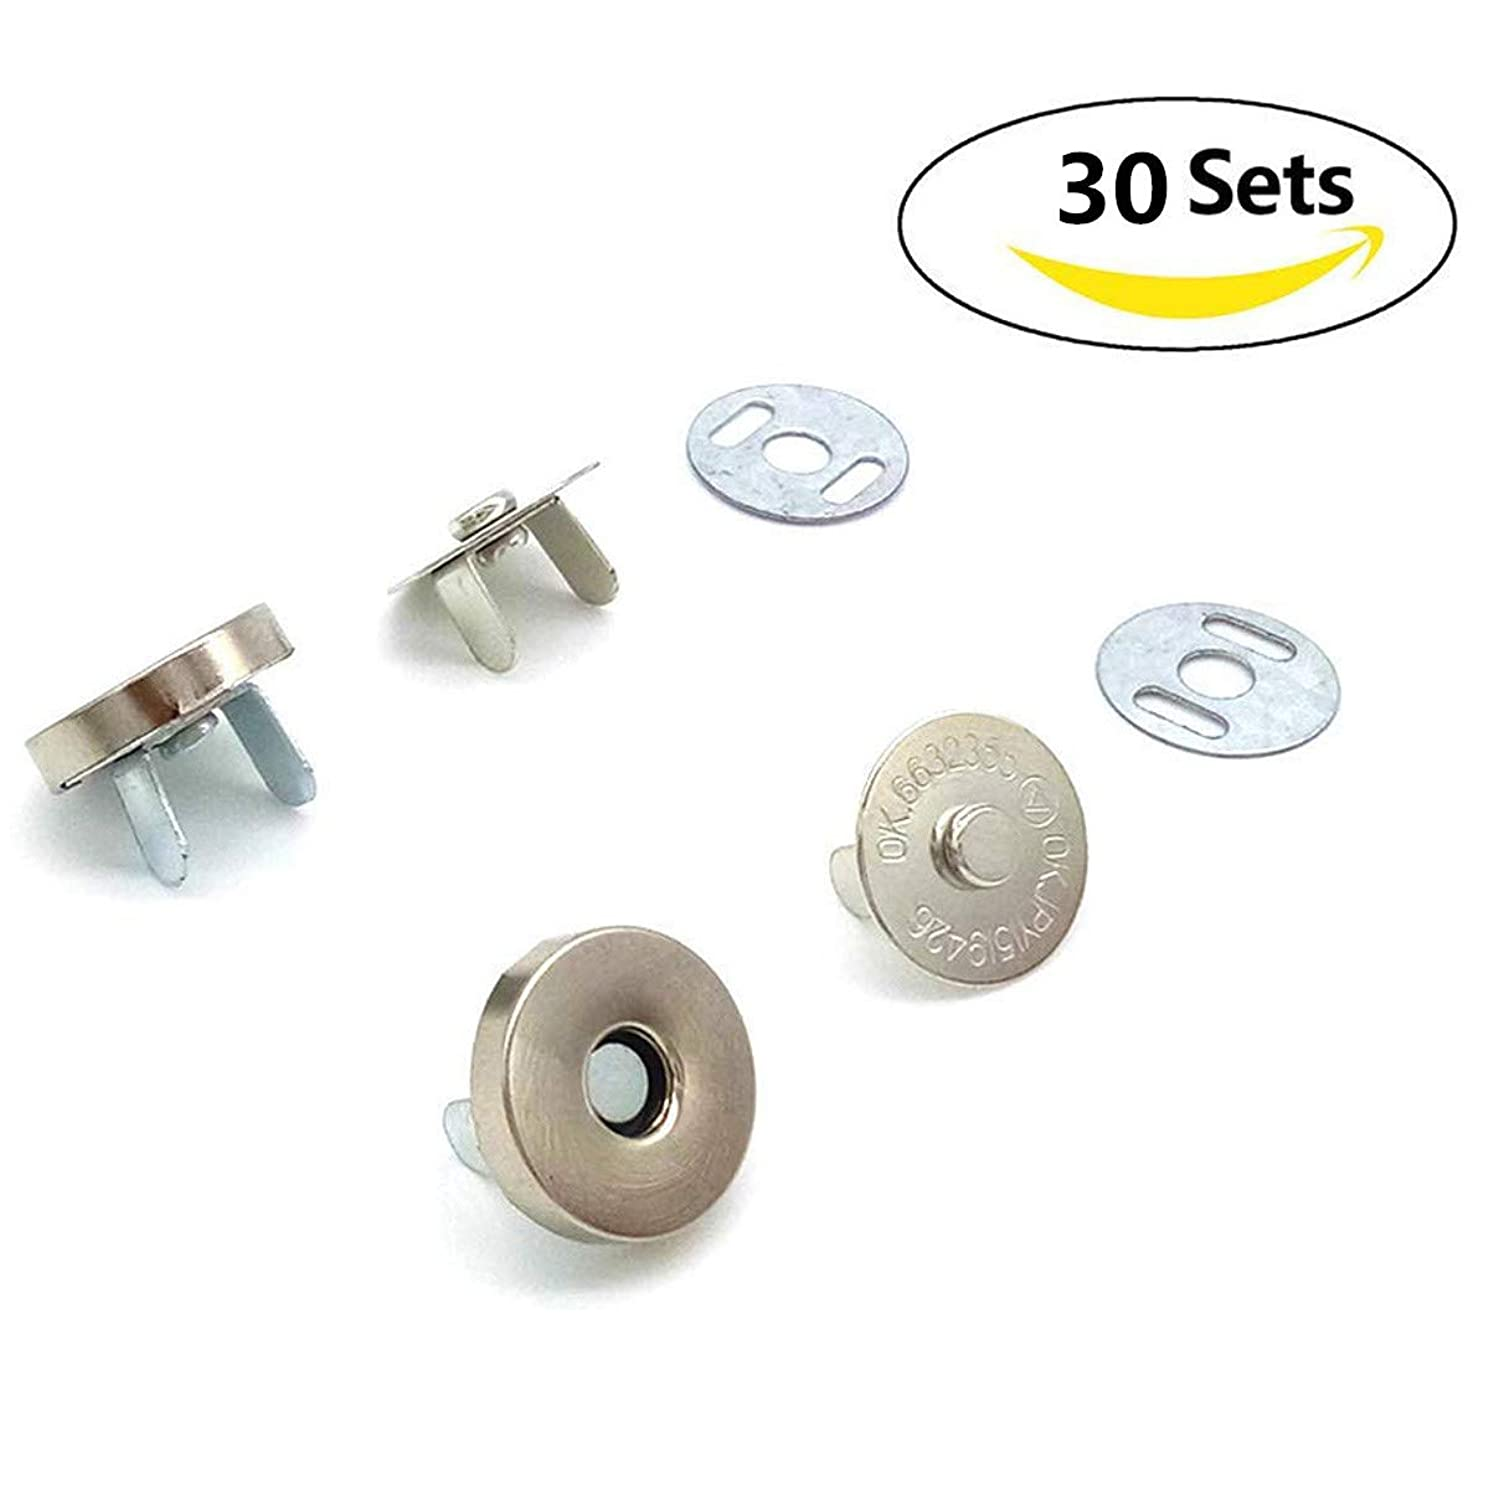 30 Sets Silver Tone Magnetic Button Clasp Snaps 18mm for Sewing, Craft, Purses, Bags, Clothes, Leather, Clothing Scrapbooking Handbag